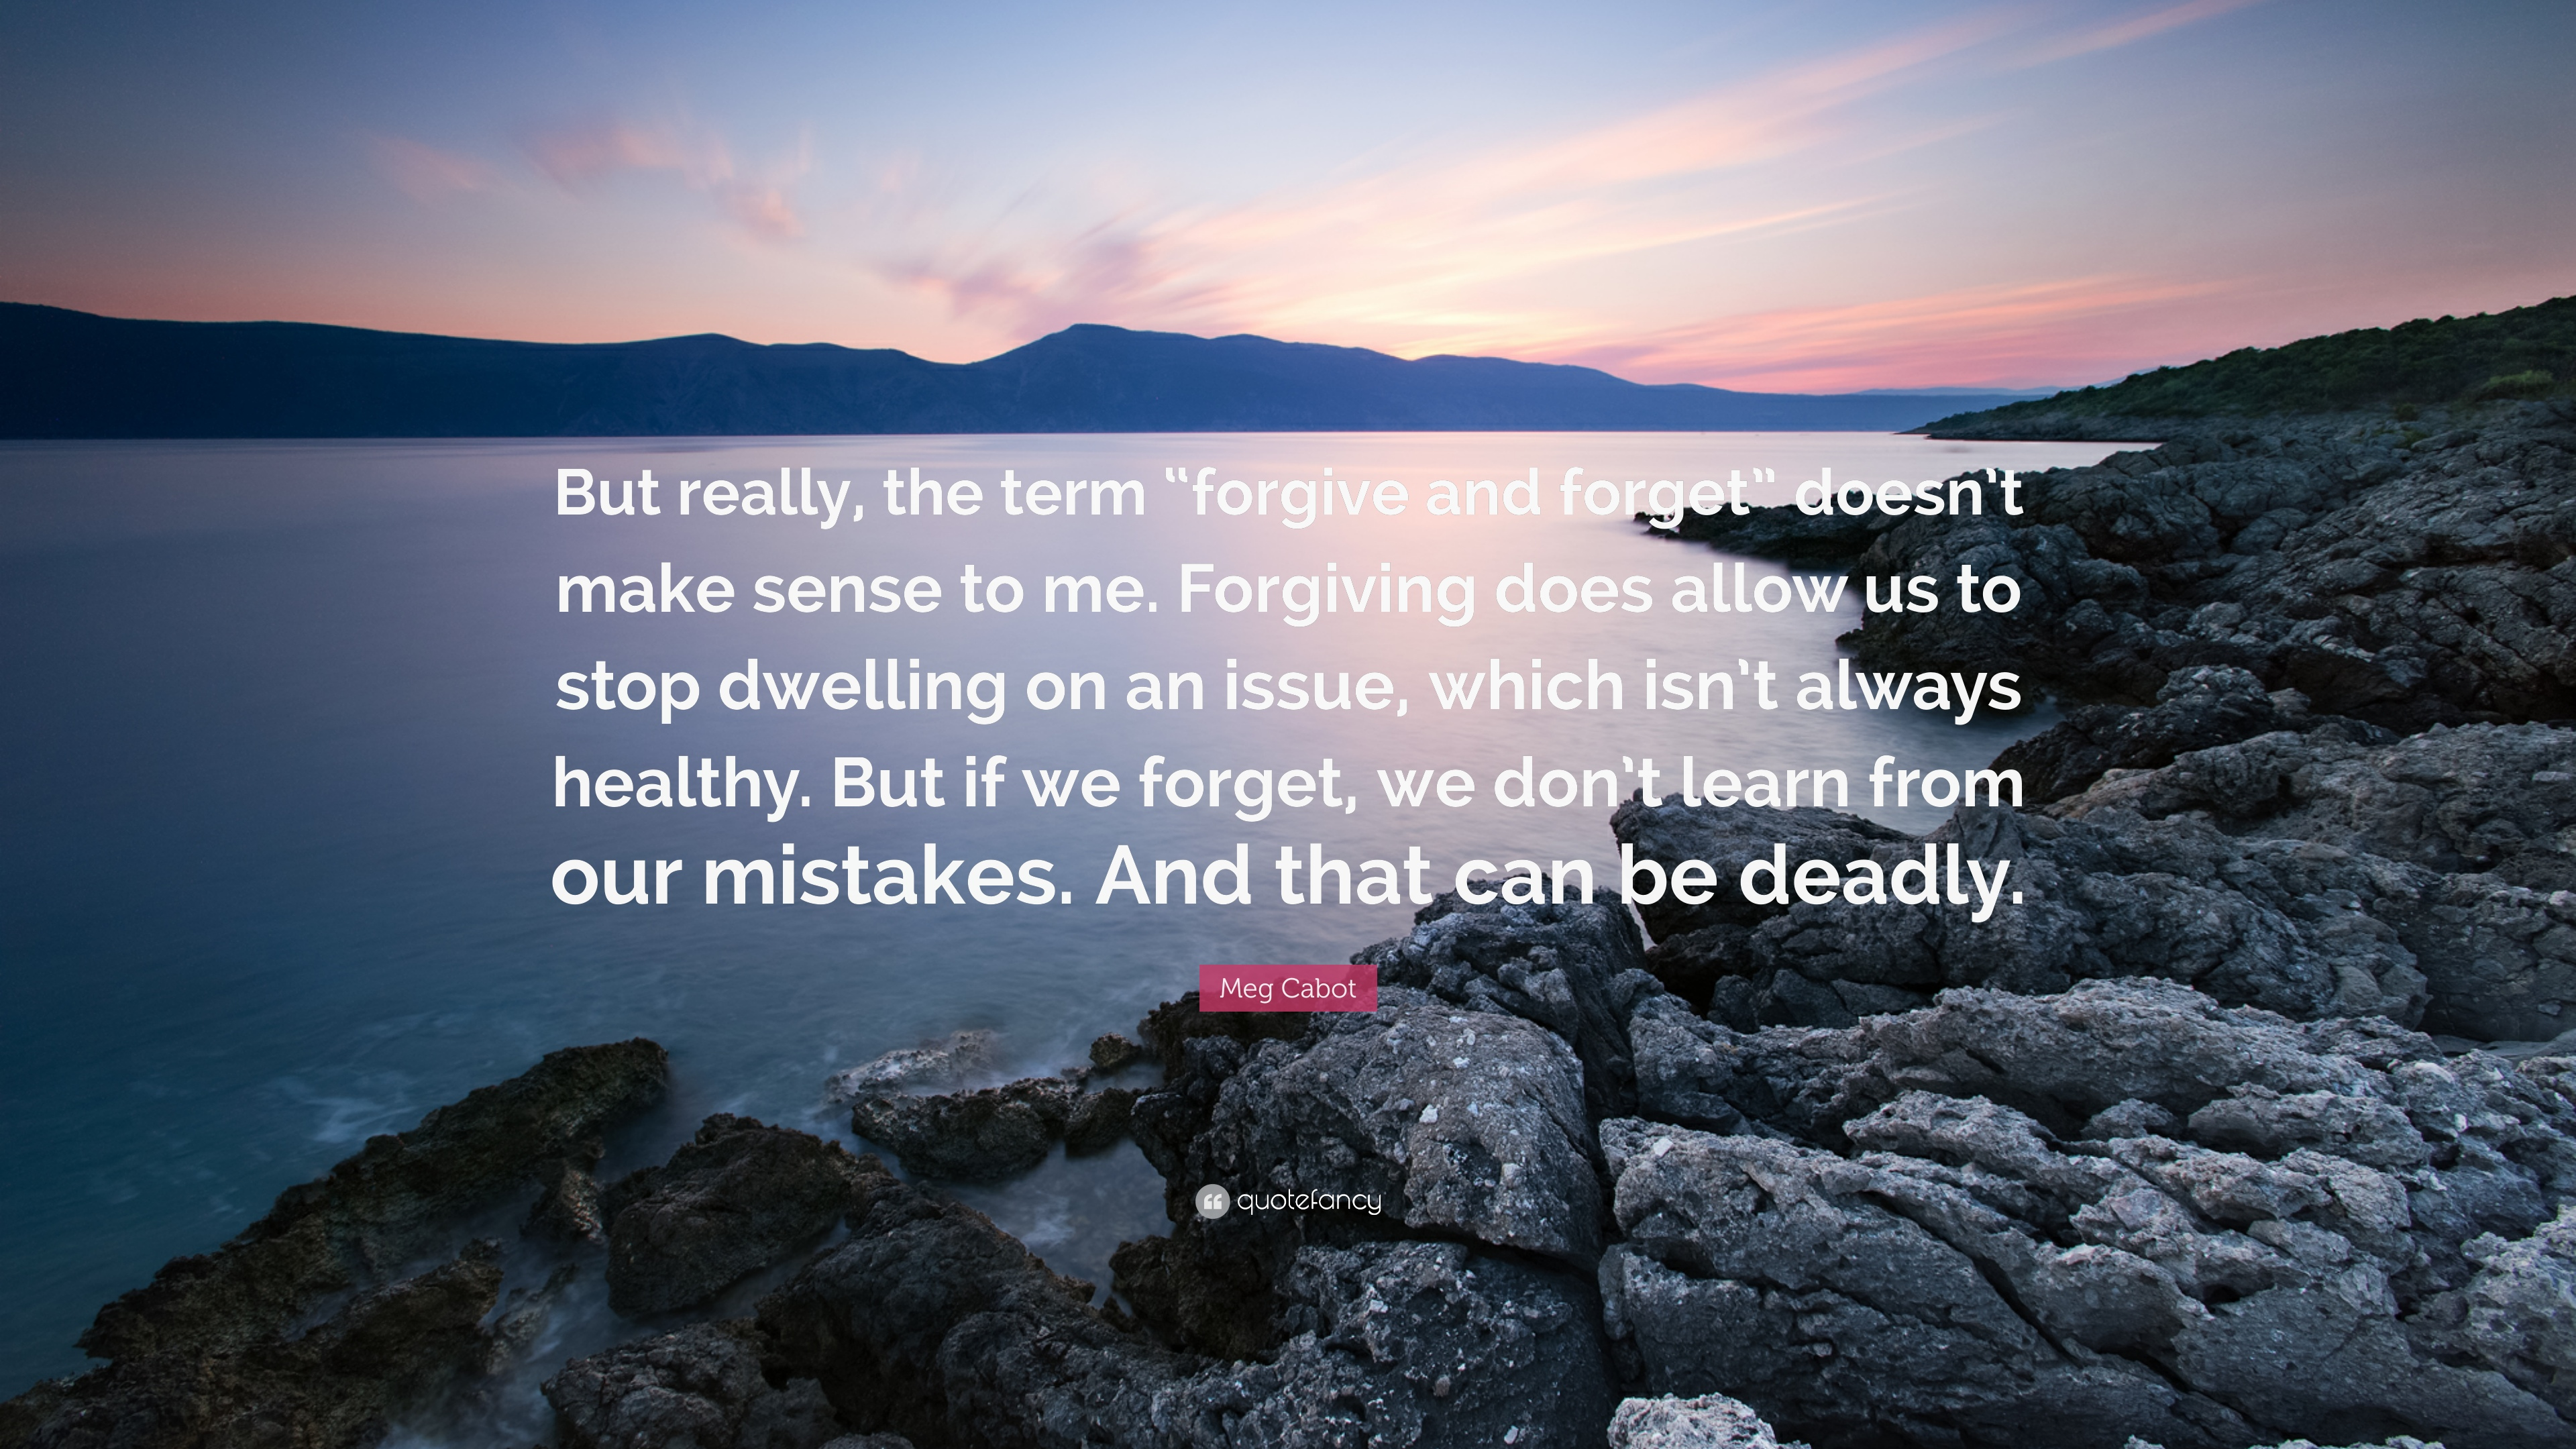 meg cabot quote but really the term forgive and forget doesn meg cabot quote but really the term forgive and forget doesn